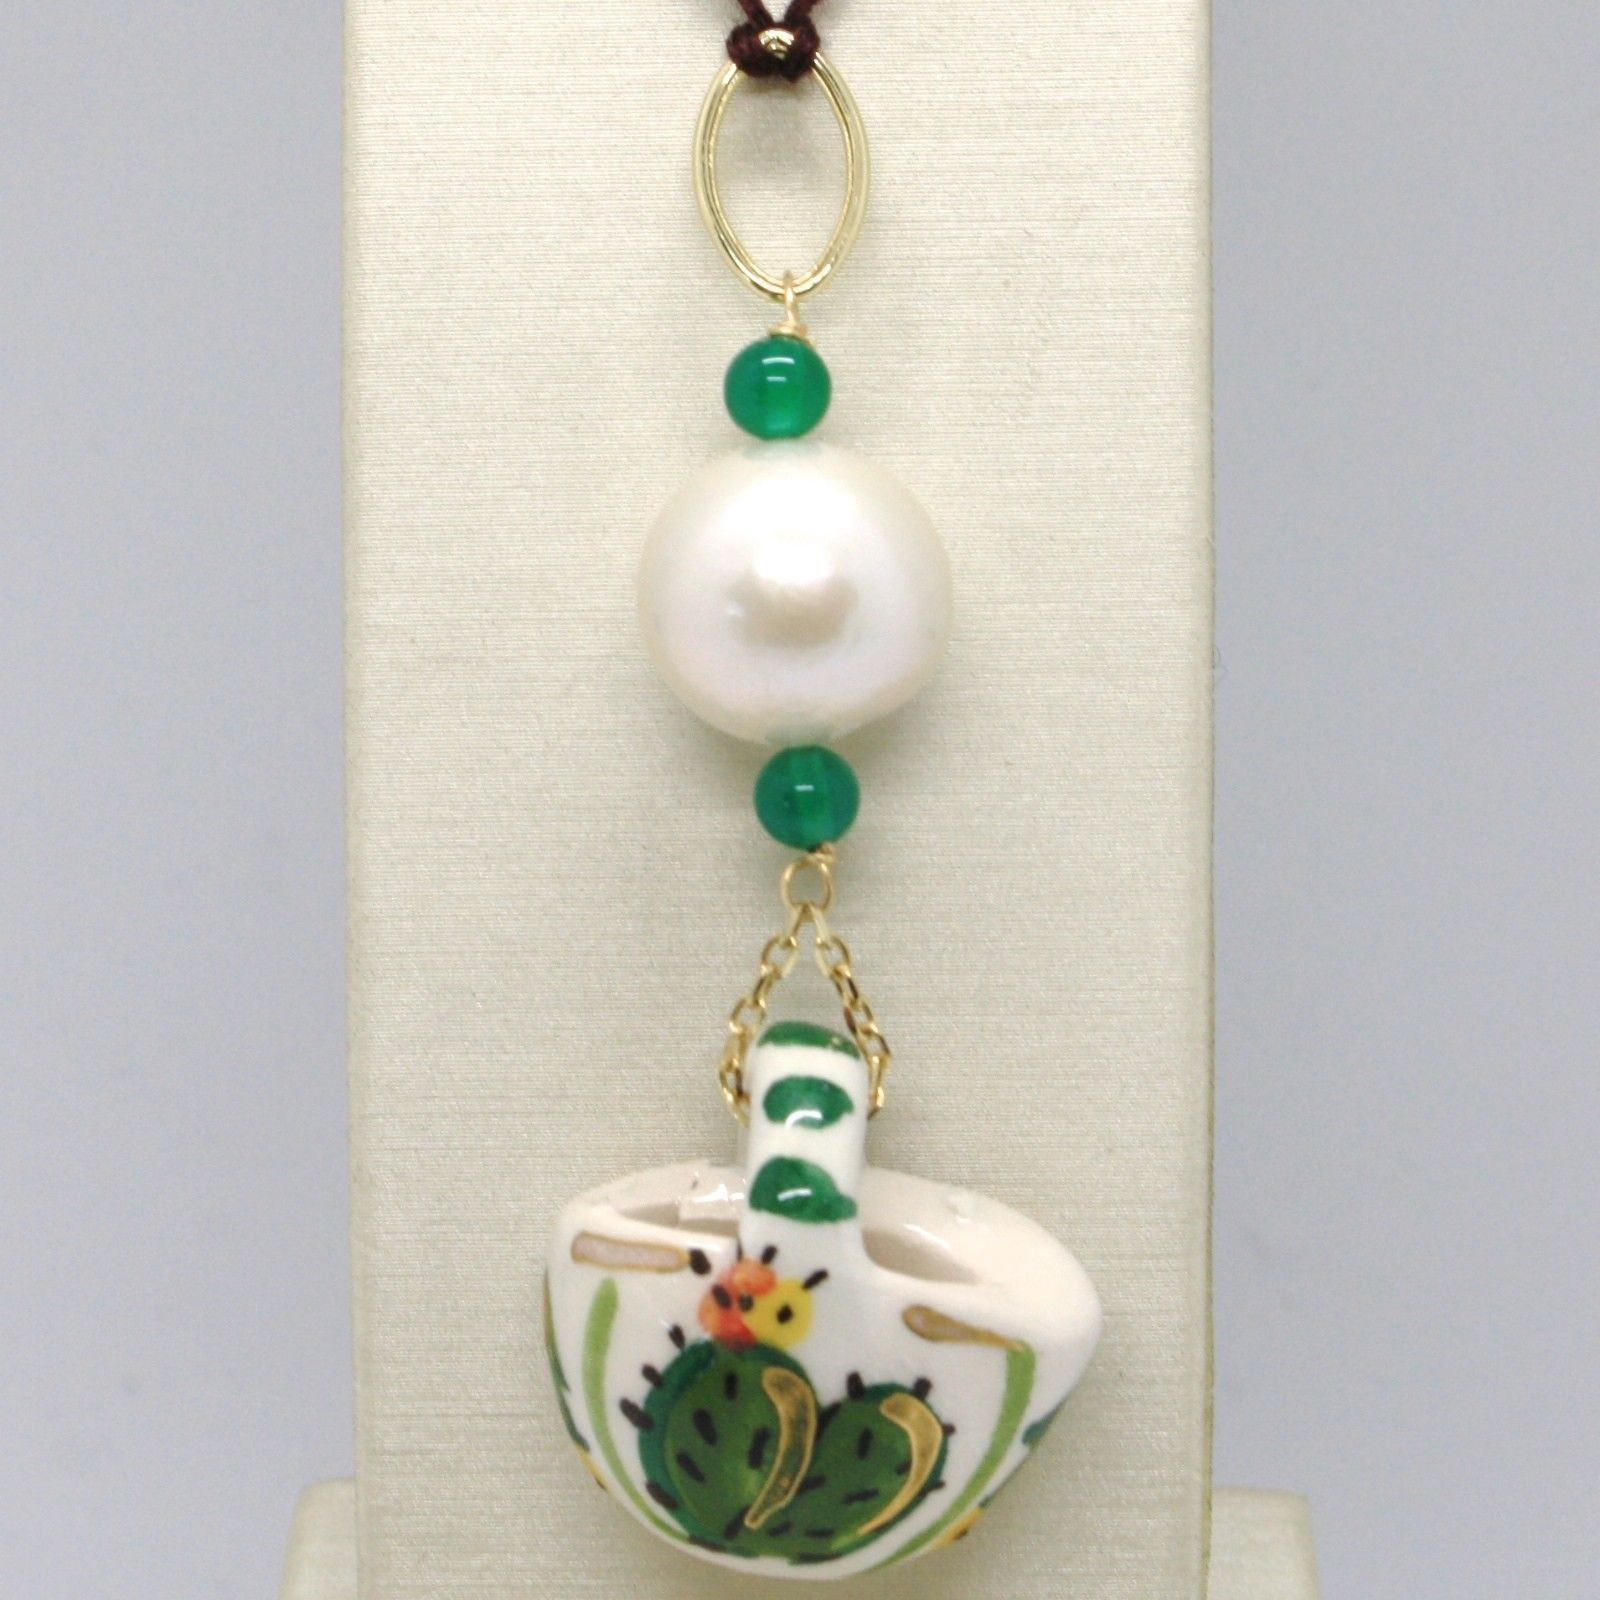 PENDANT YELLOW GOLD 18K 750 WITH PEARL QUARTZ GREEN AND CERAMICS MADE IN ITALY